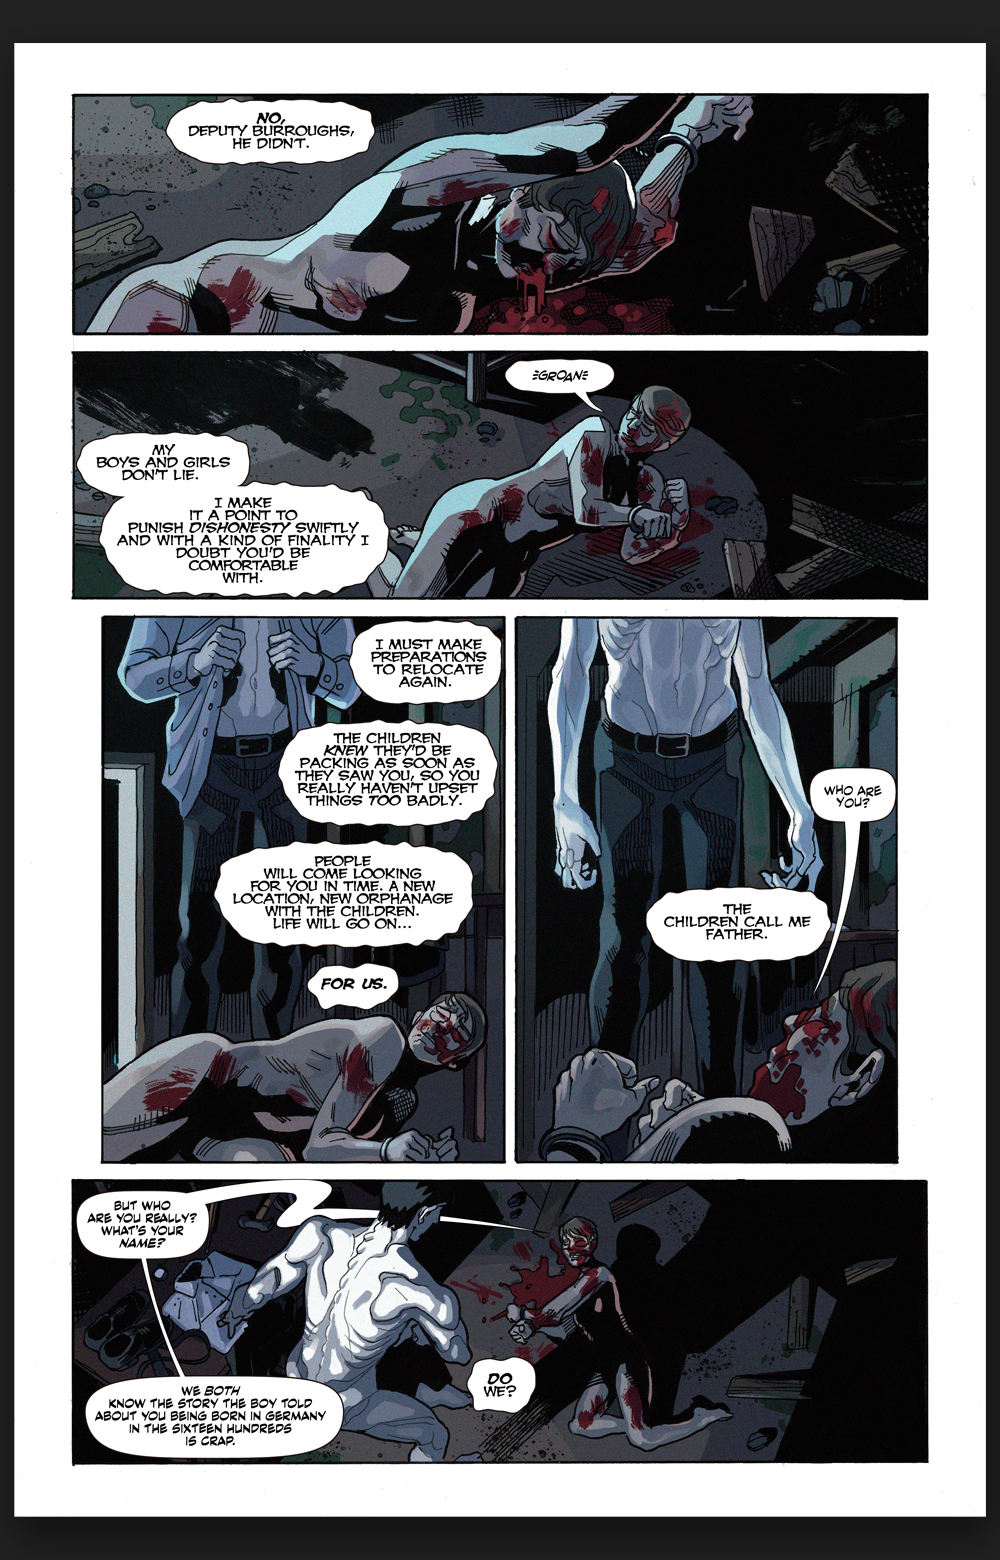 PROJECT PAGE: THE LIVING FEARS - COMIC PAGE 4